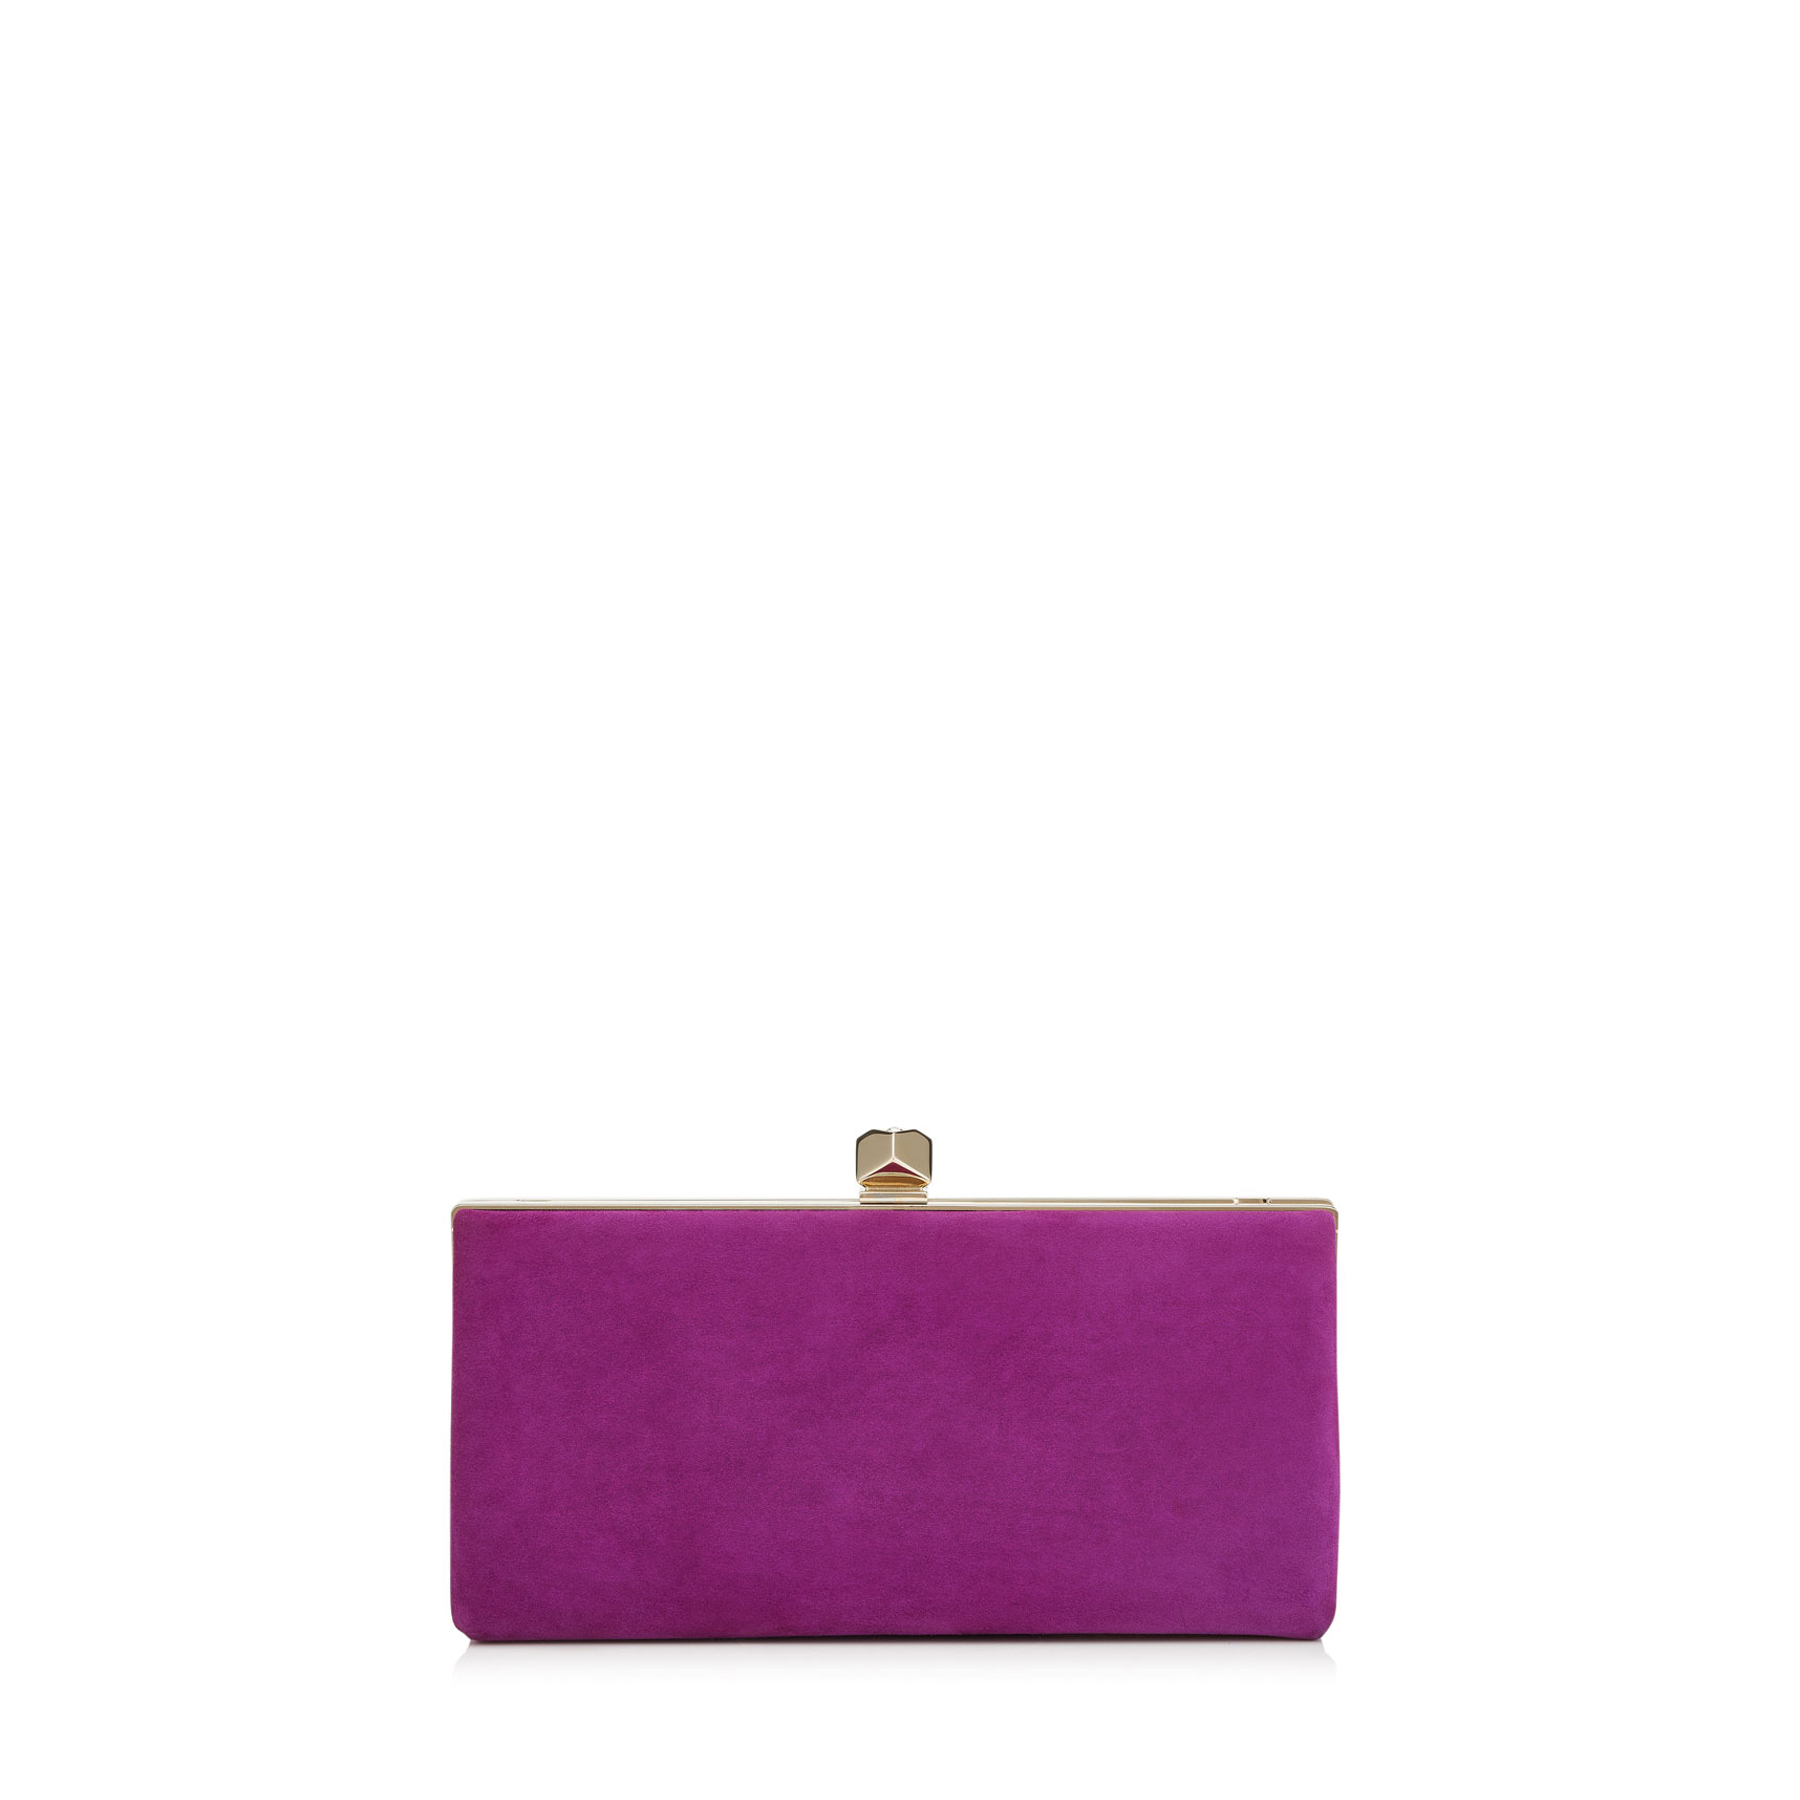 CELESTE/S Madeline Suede Clutch Bag with Cube Clasp